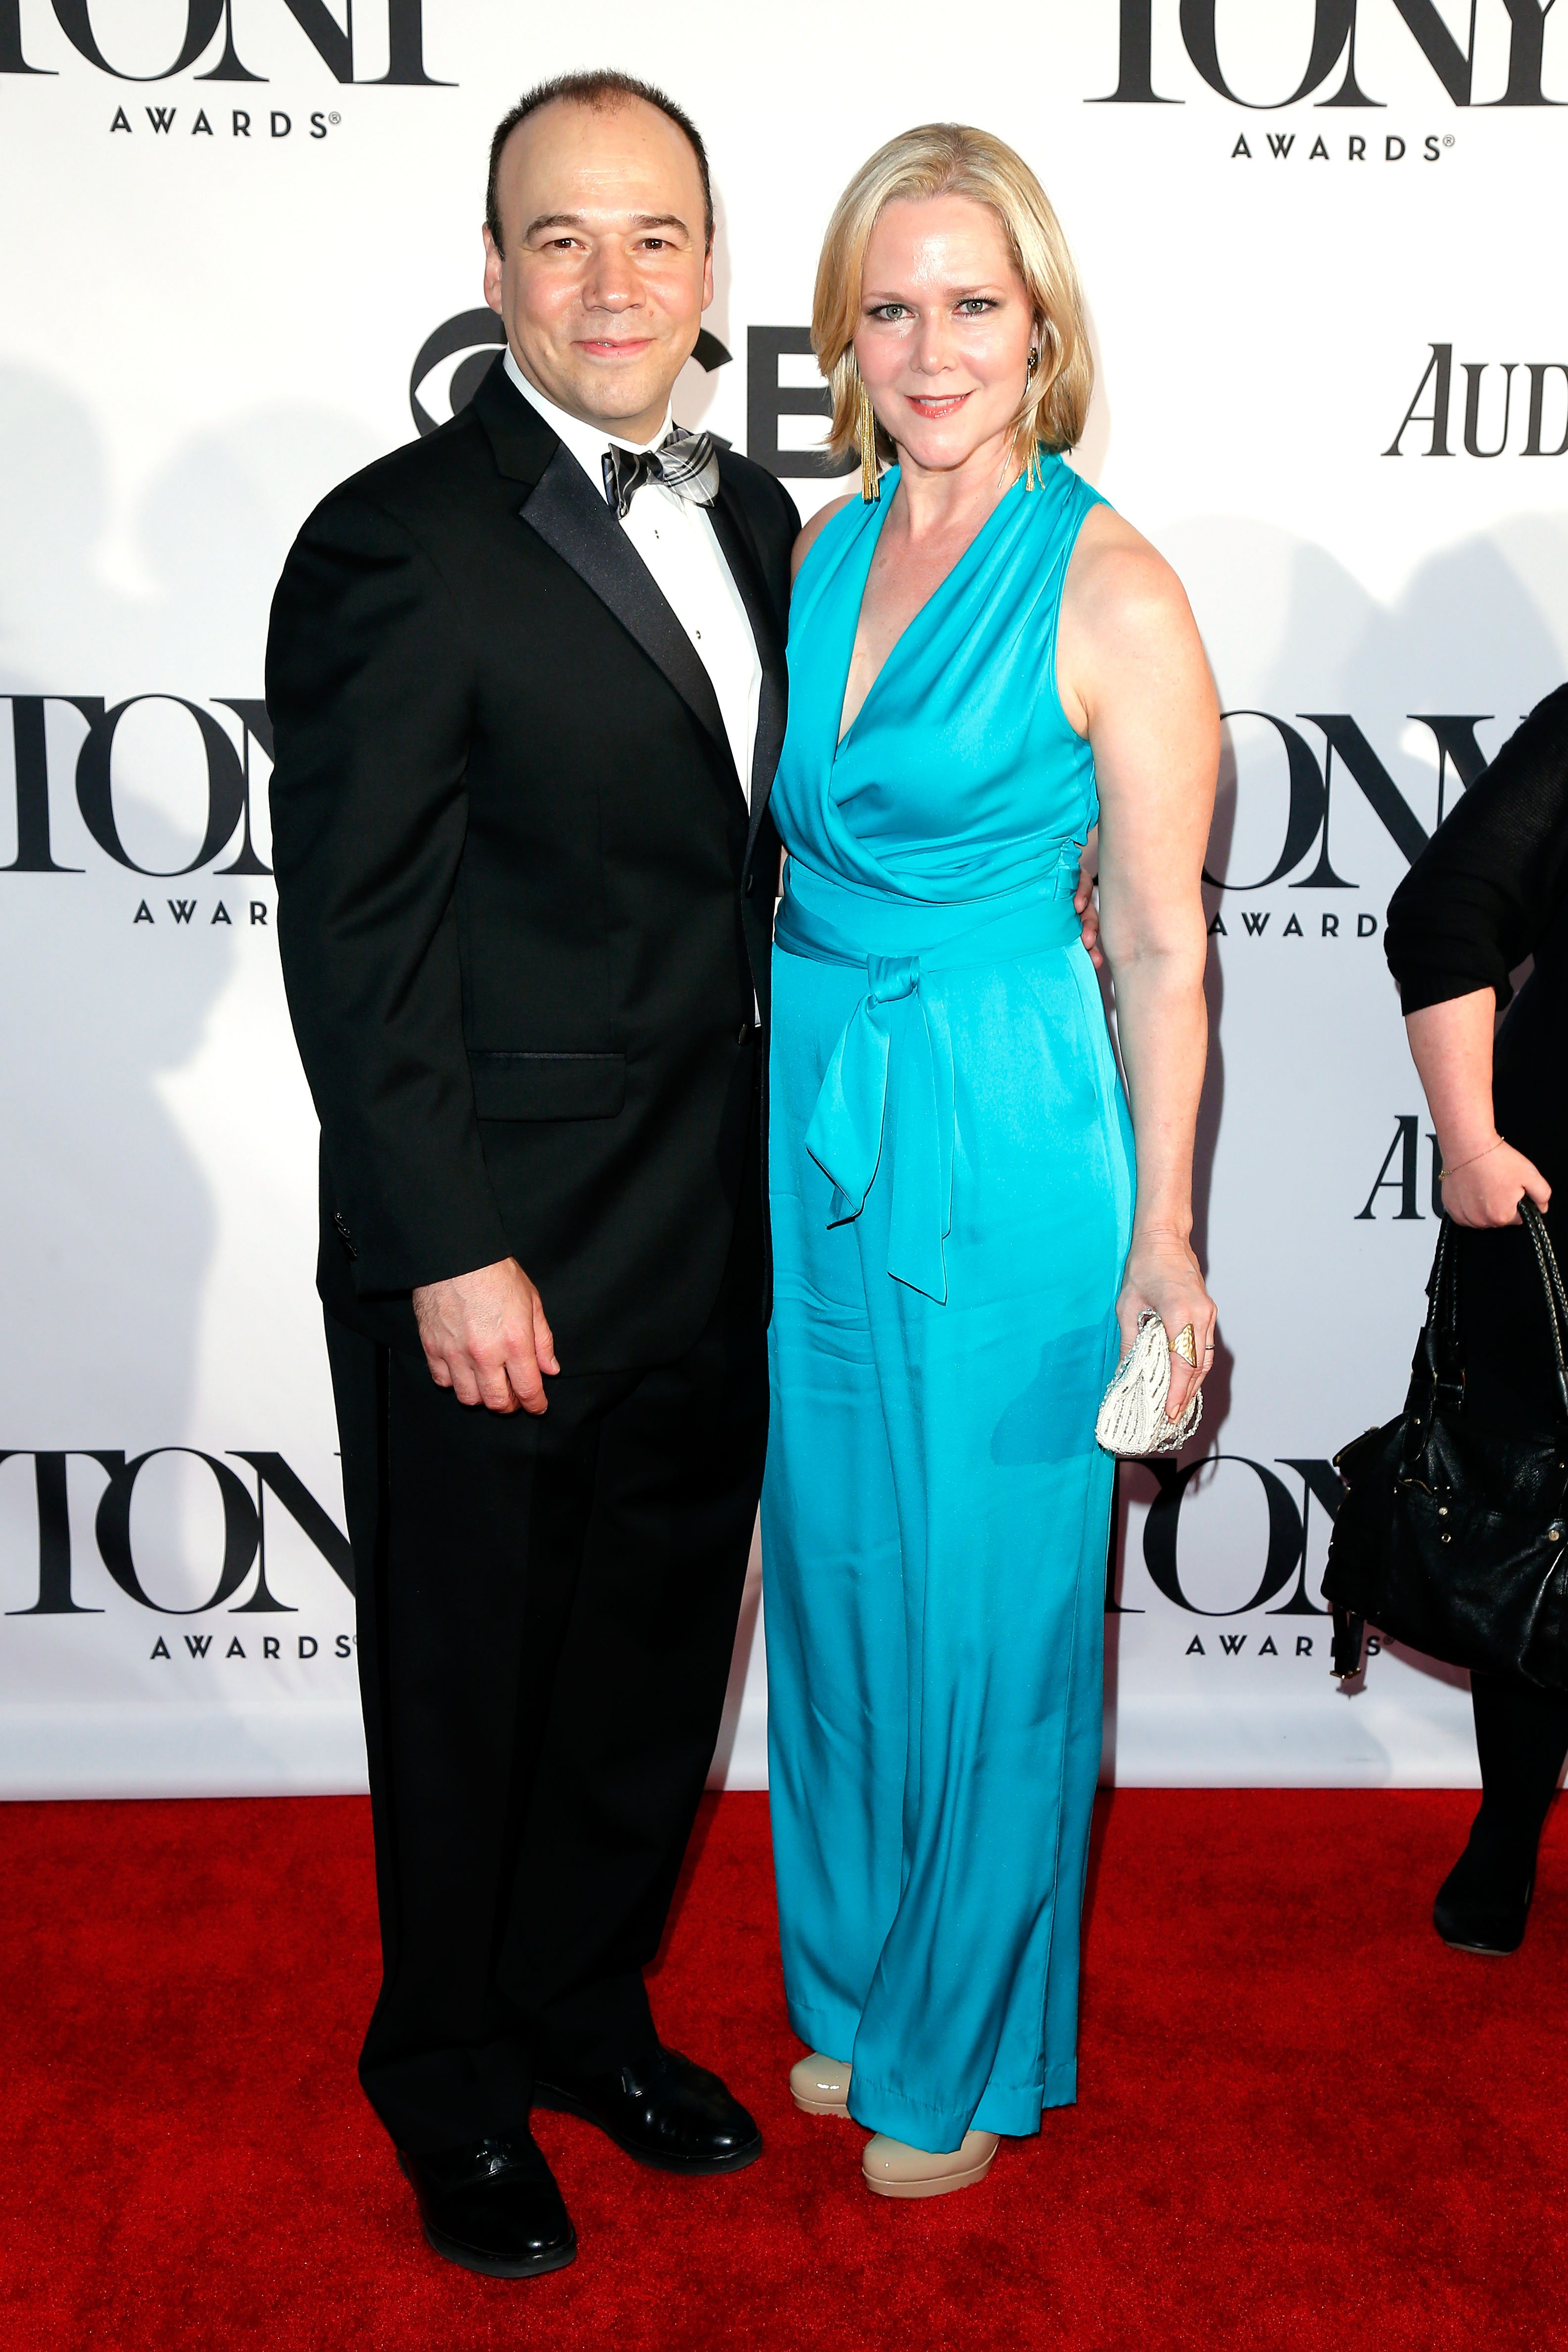 Actors Danny Burstein and Rebecca Luker attend The 67th Annual Tony Awards at Radio City Music Hall on June 9, 2013 in New York City.   Source: Getty Images